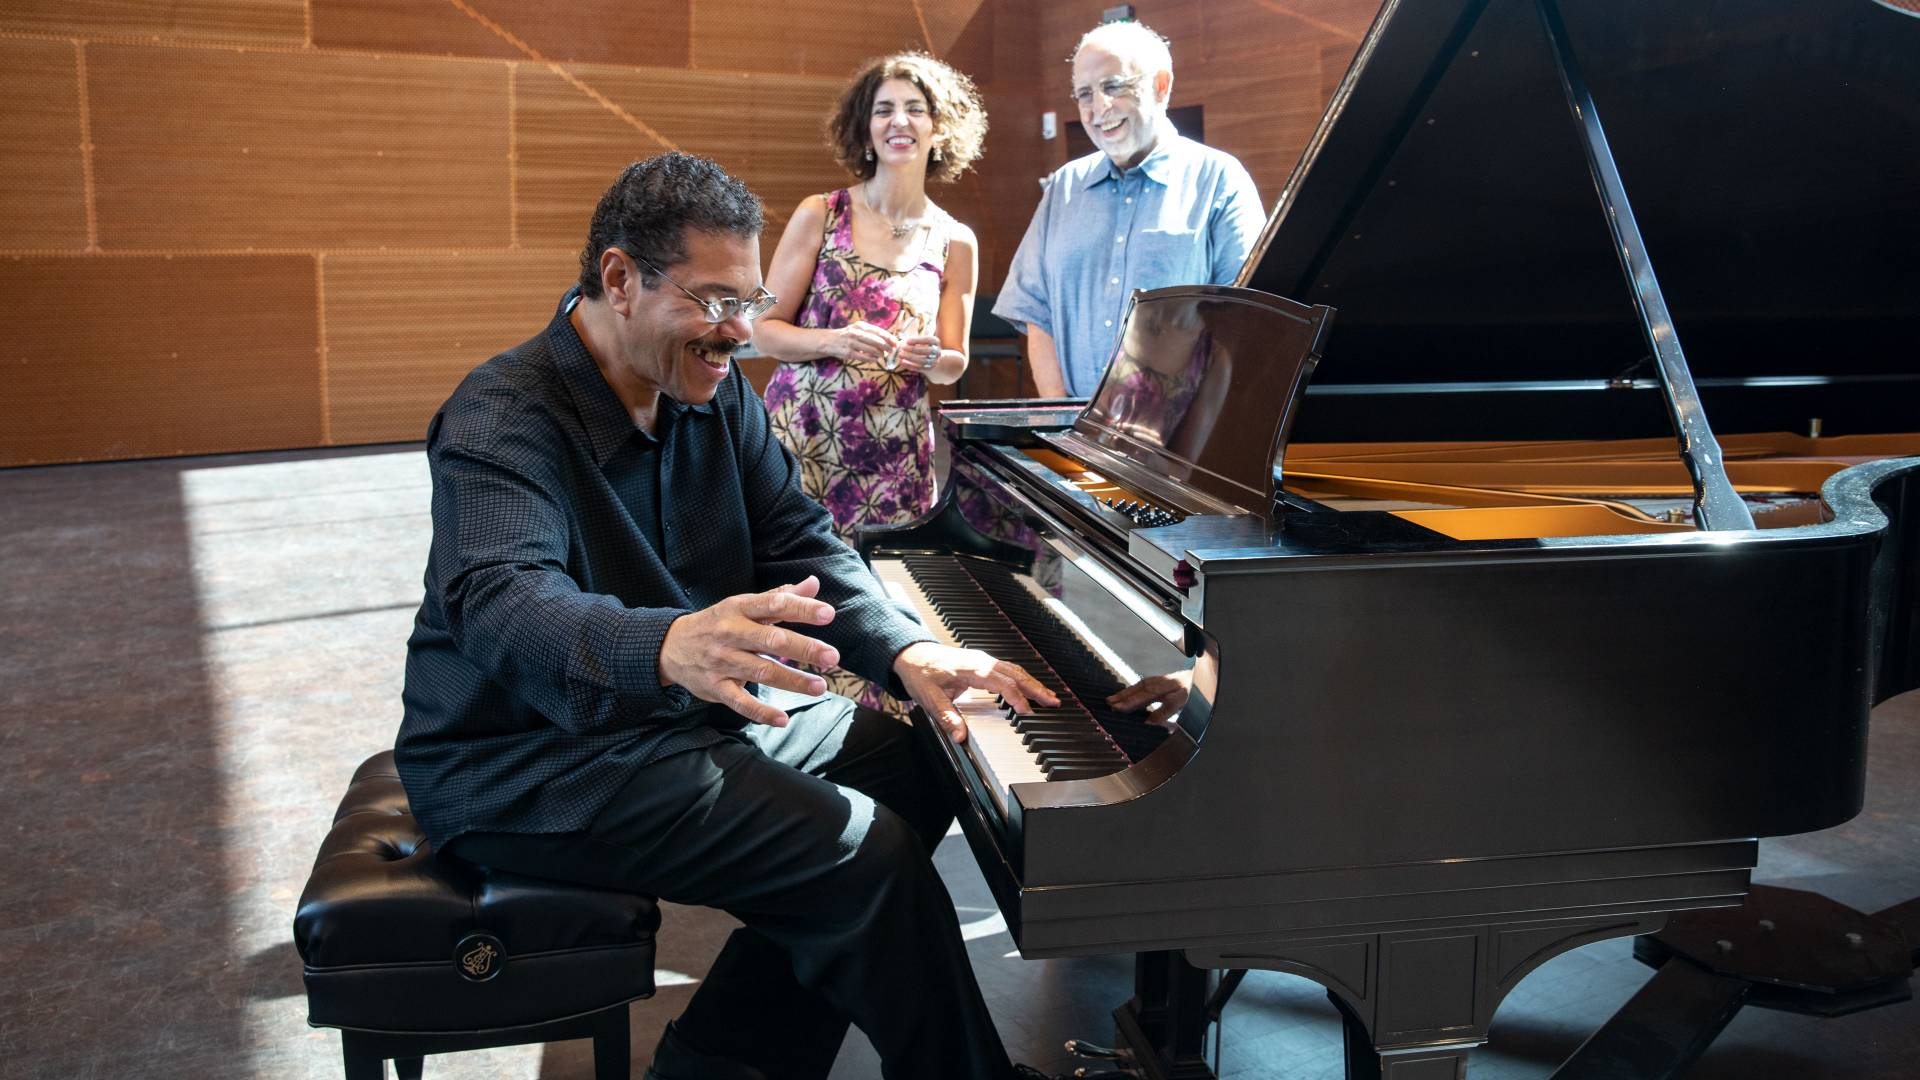 Alfonso Fuentes at piano, Gabriela Nouzeilles and Arcadio Díaz-Quiñones